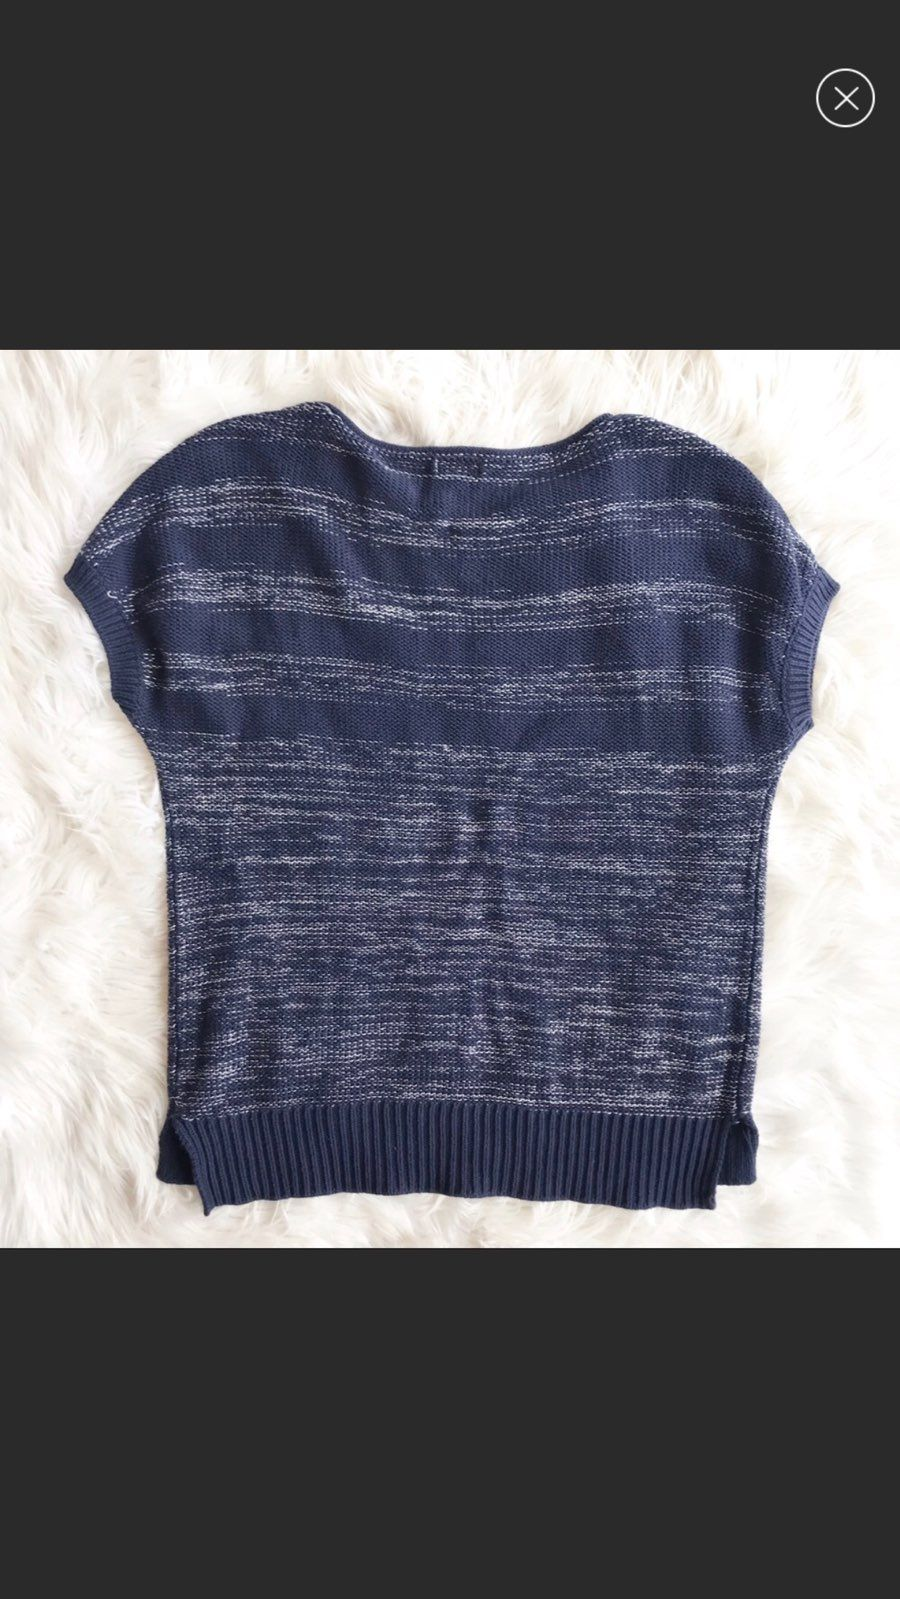 Gap Navy Blue Sweater - Mercari: BUY & SELL THINGS YOU LOVE